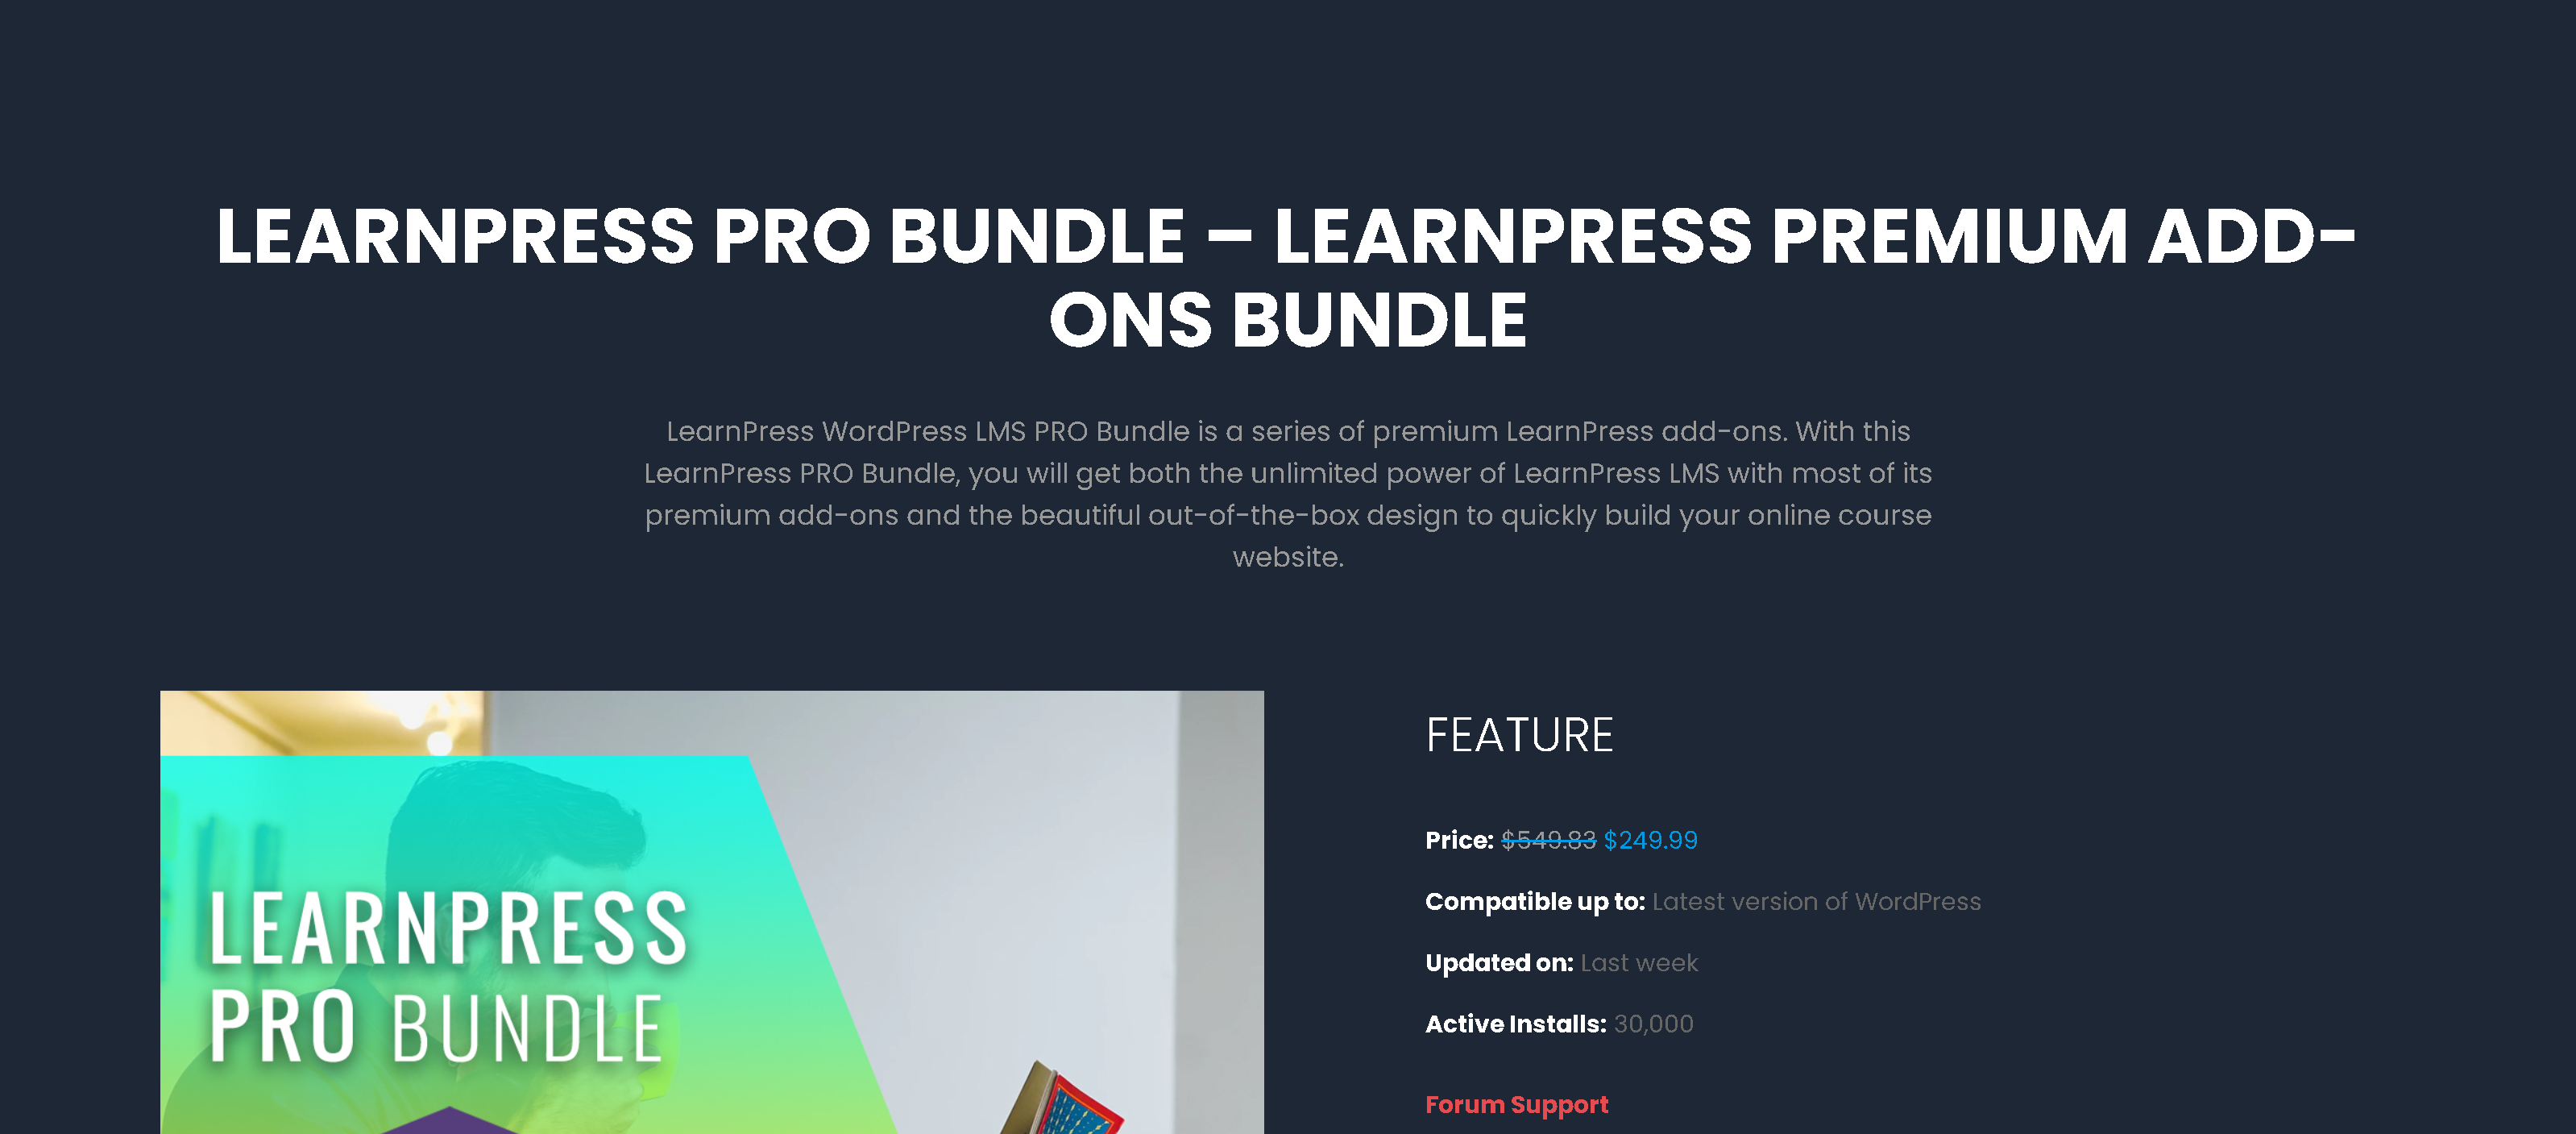 LearnPress PRO Bundle 3.2.7.8 – All 15 LearnPress Premium Add-ons